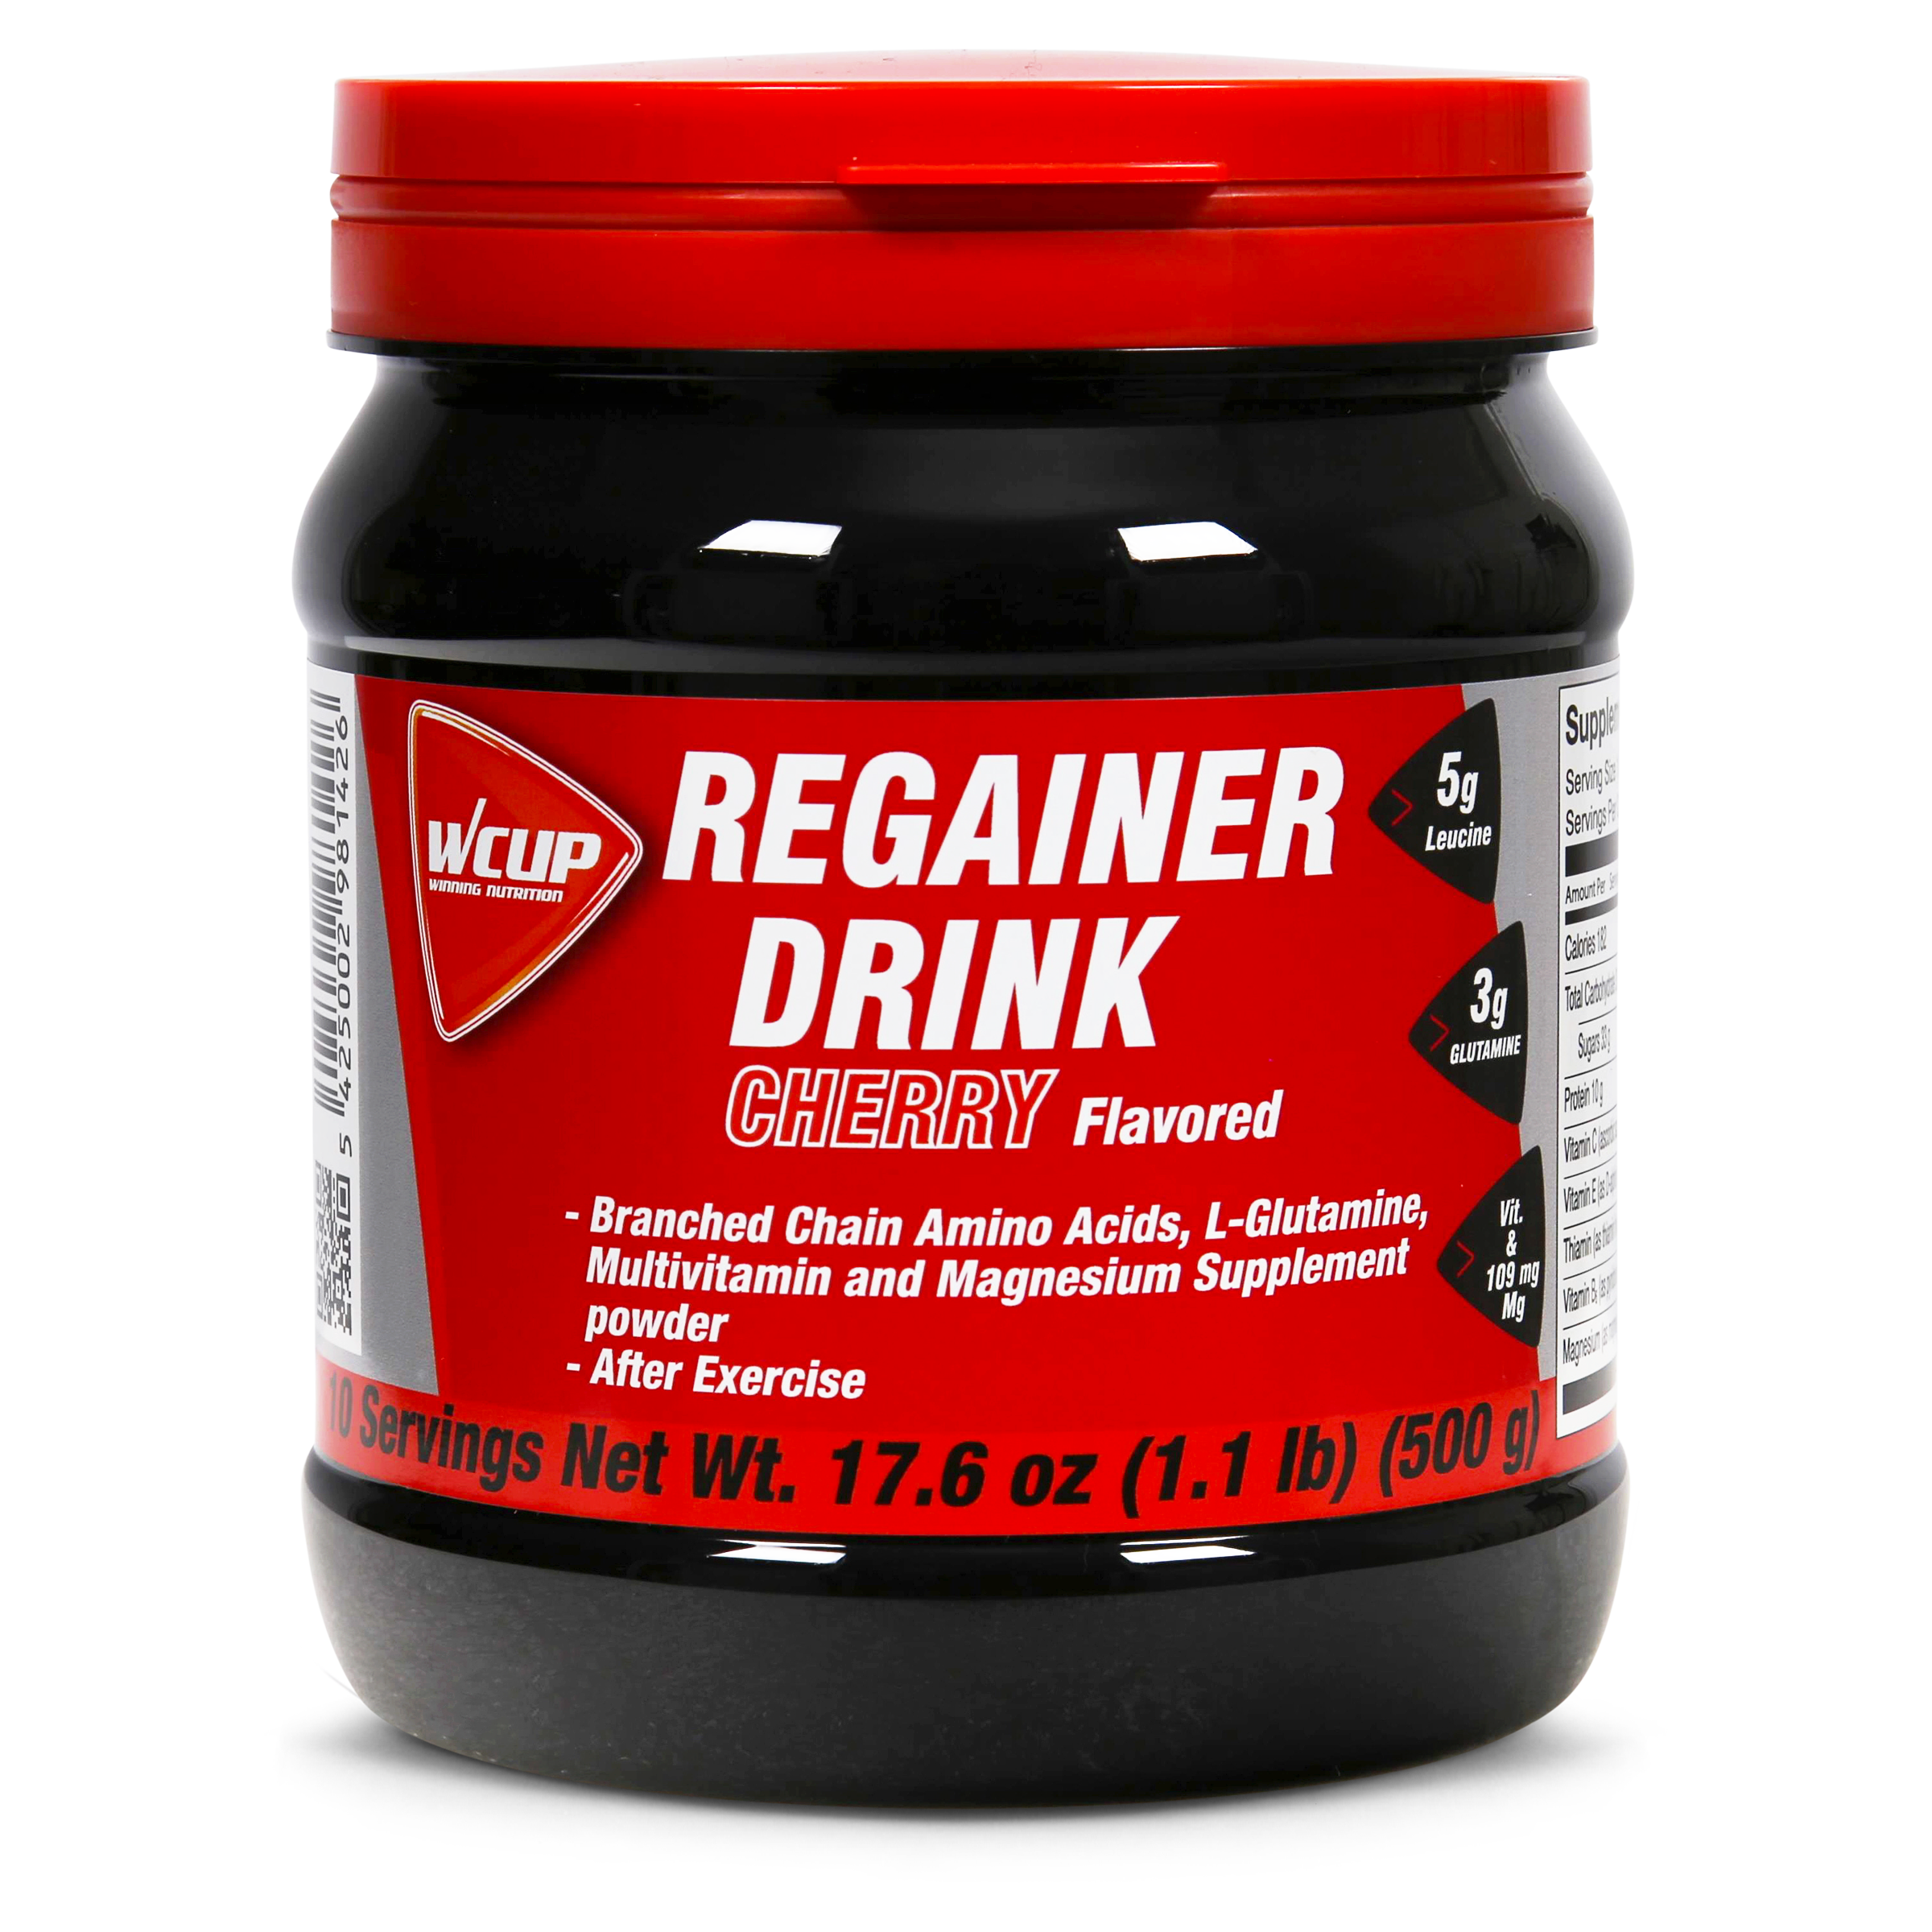 Regainer Drink Cherry